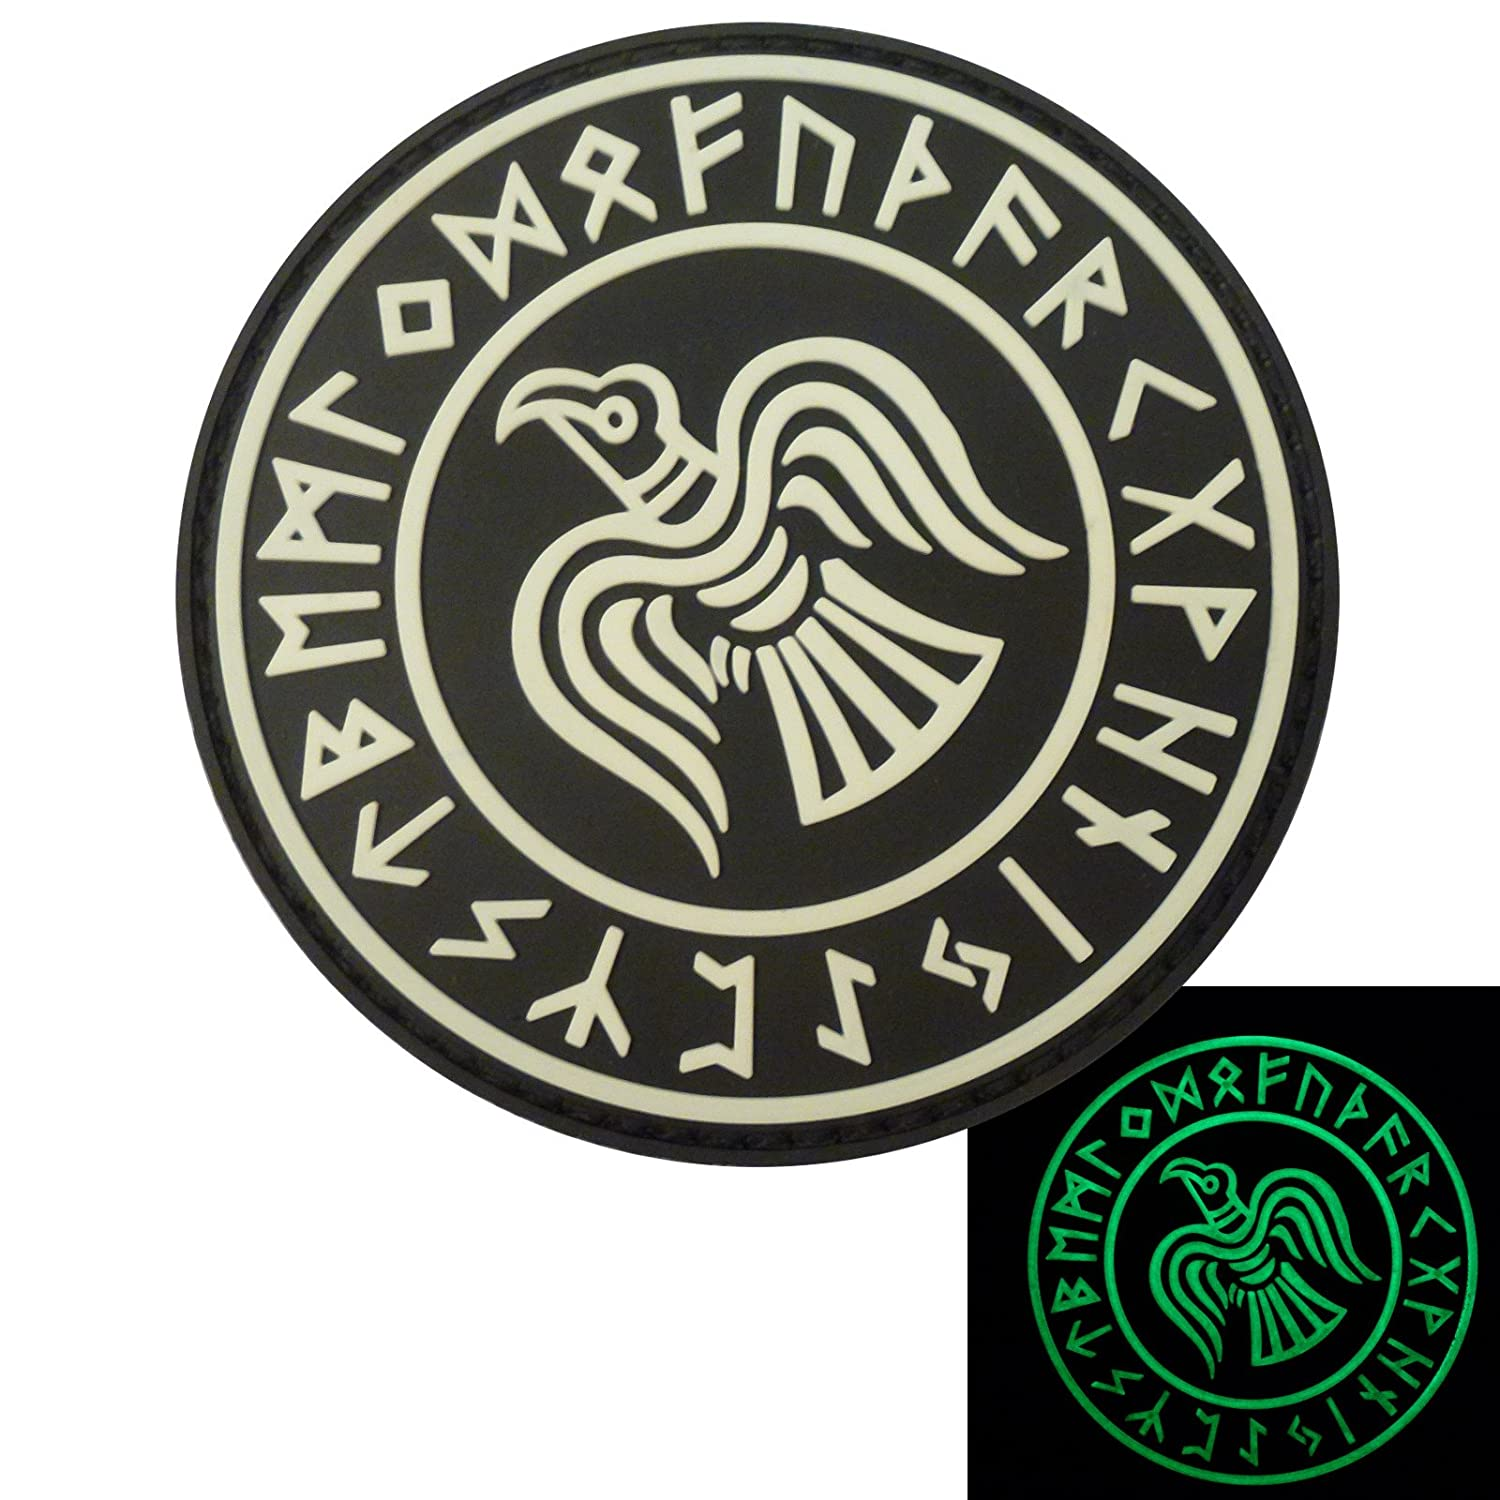 Glow Dark Rare Norse Viking Raven Runes Odin God of War Morale PVC Rubber 3D Touch Fastener Patch 2AFTER1 P.1792.1.V